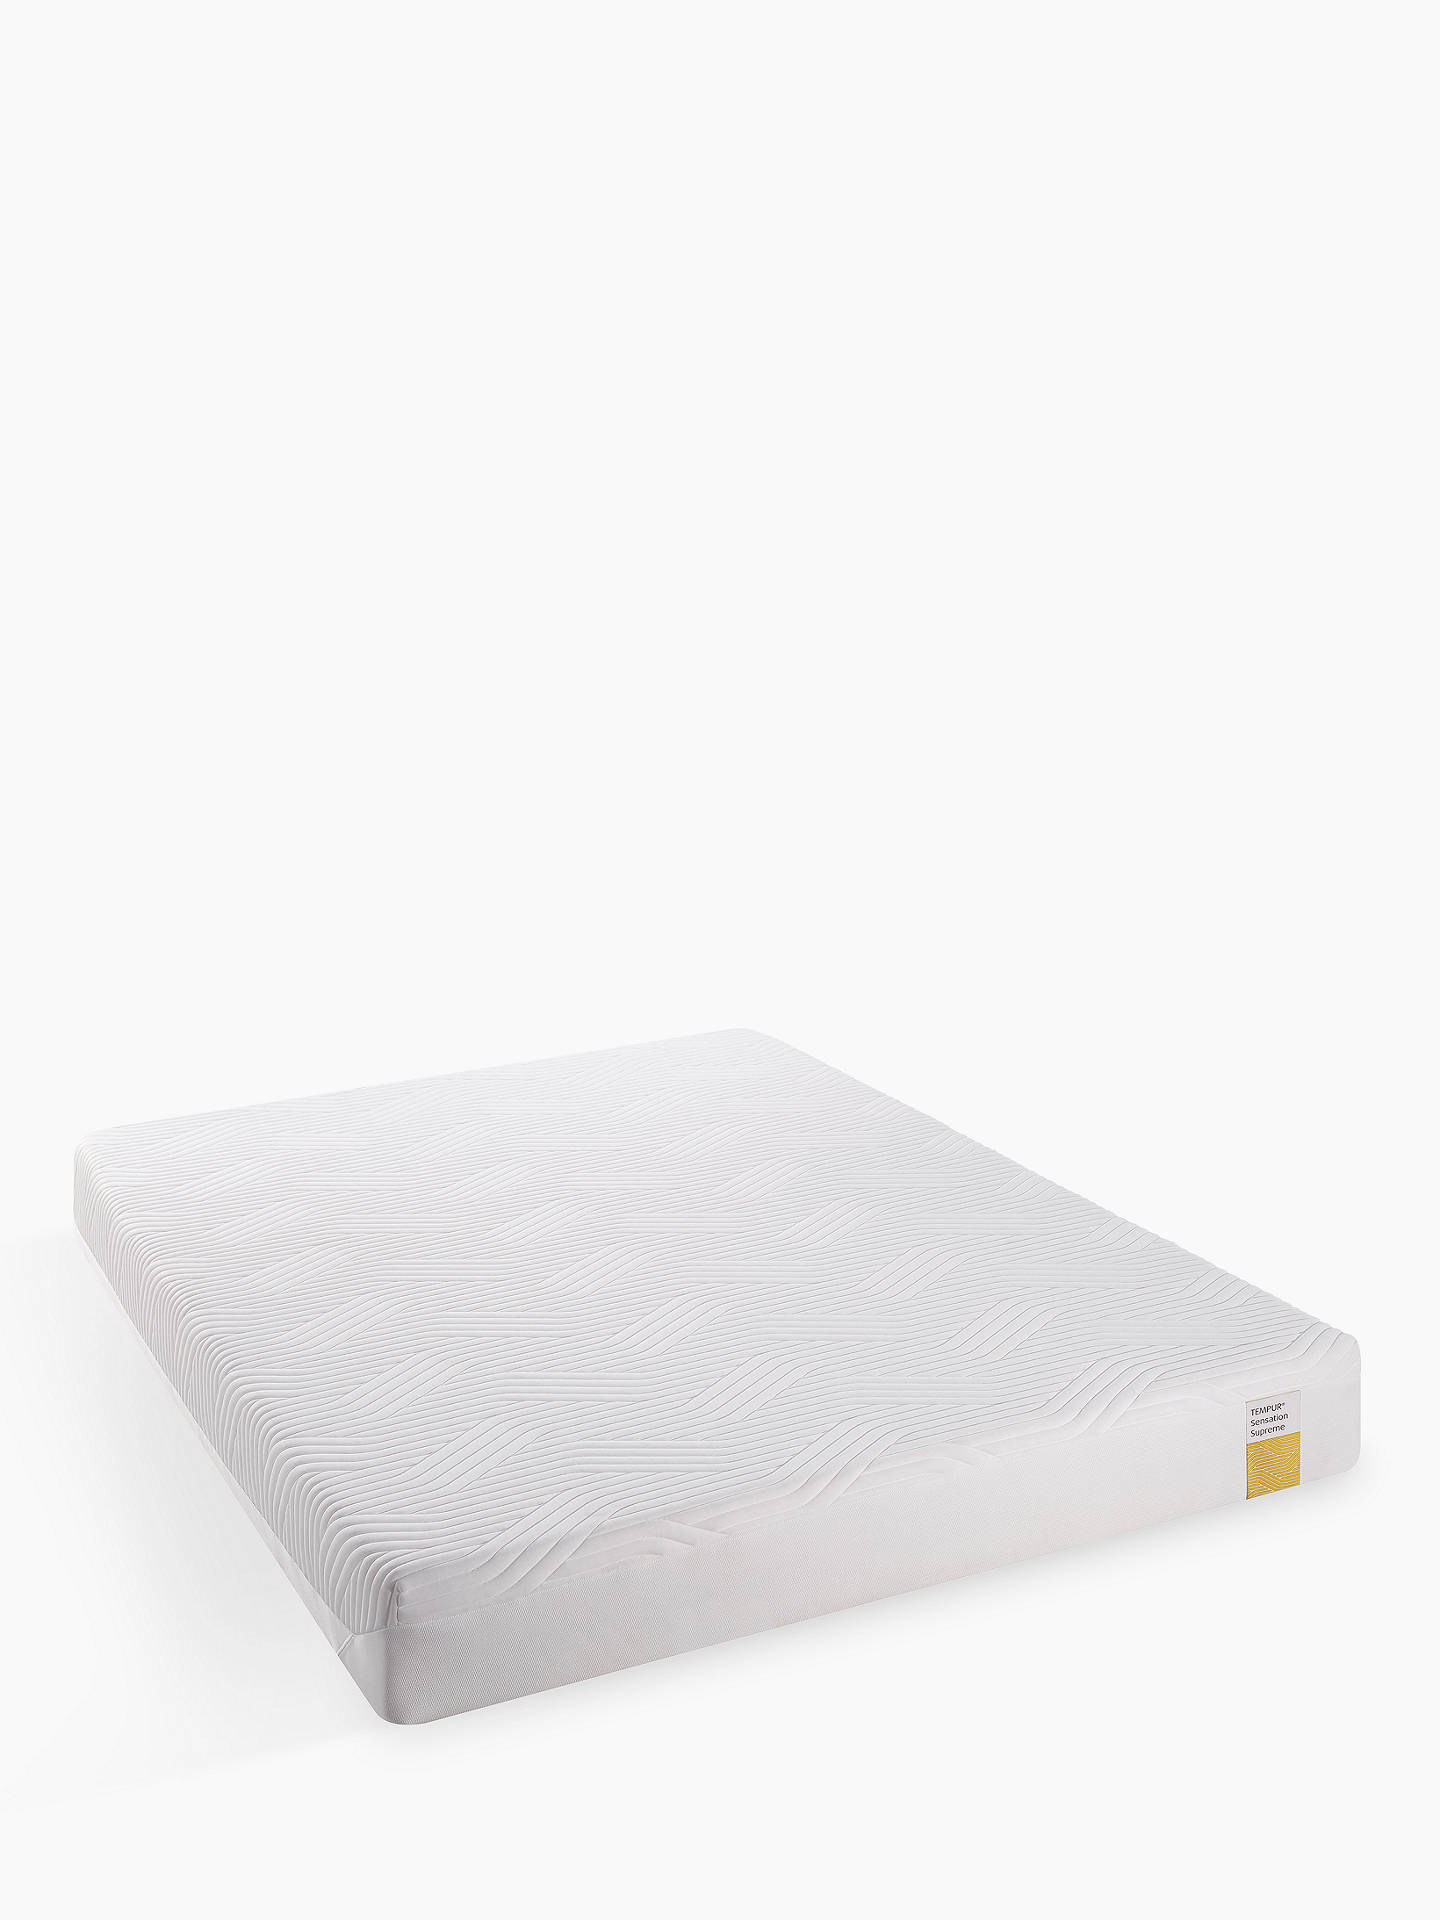 BuyTempur Sensation Supreme 21 Memory Foam Mattress, Medium, Double Online at johnlewis.com